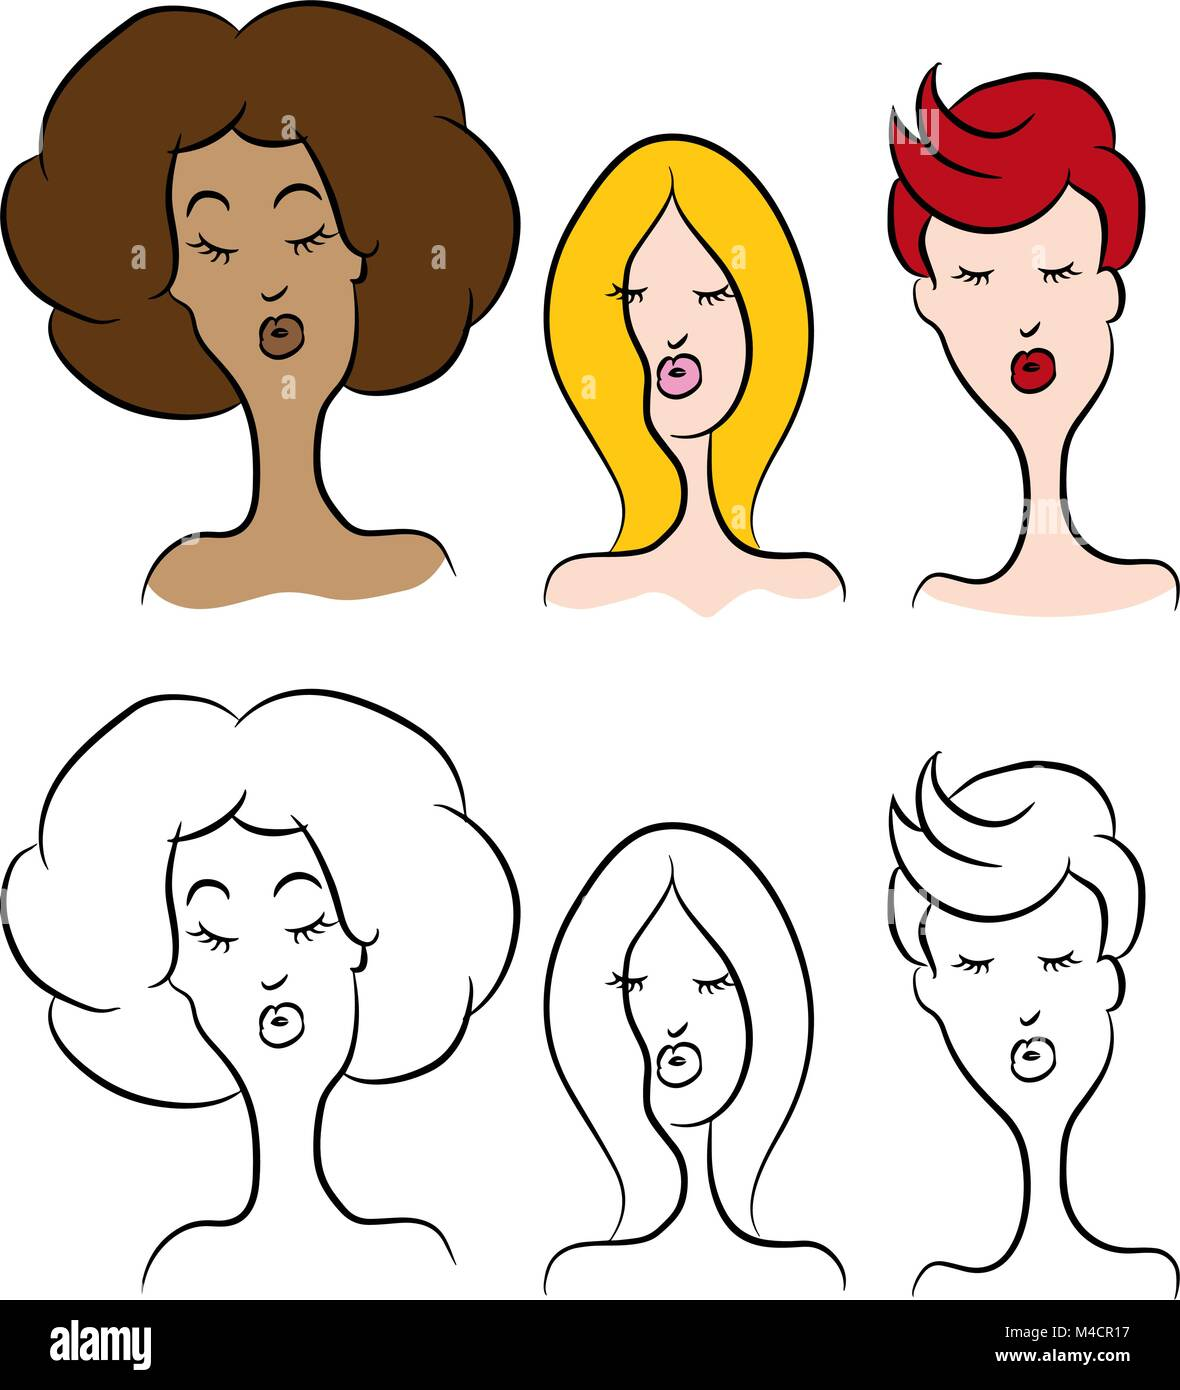 An Image Of Cartoon Women With Different Hairstyles Stock Vector Art